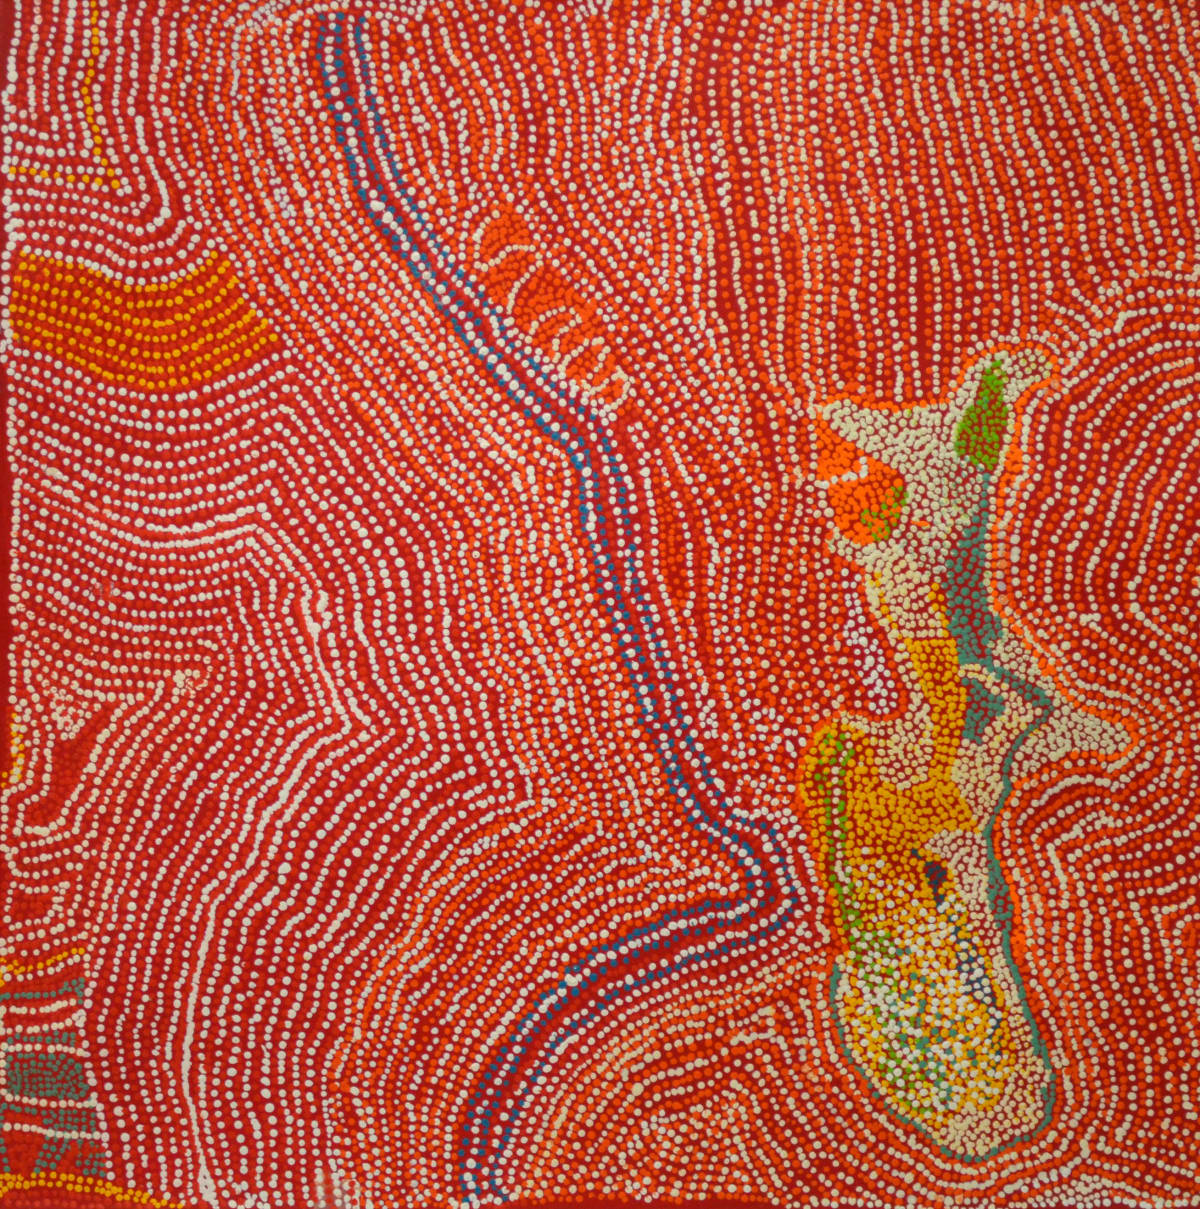 Elaine Wanatjura Lane Minyma Tjuta acrylic on canvas 91 x 91 cm